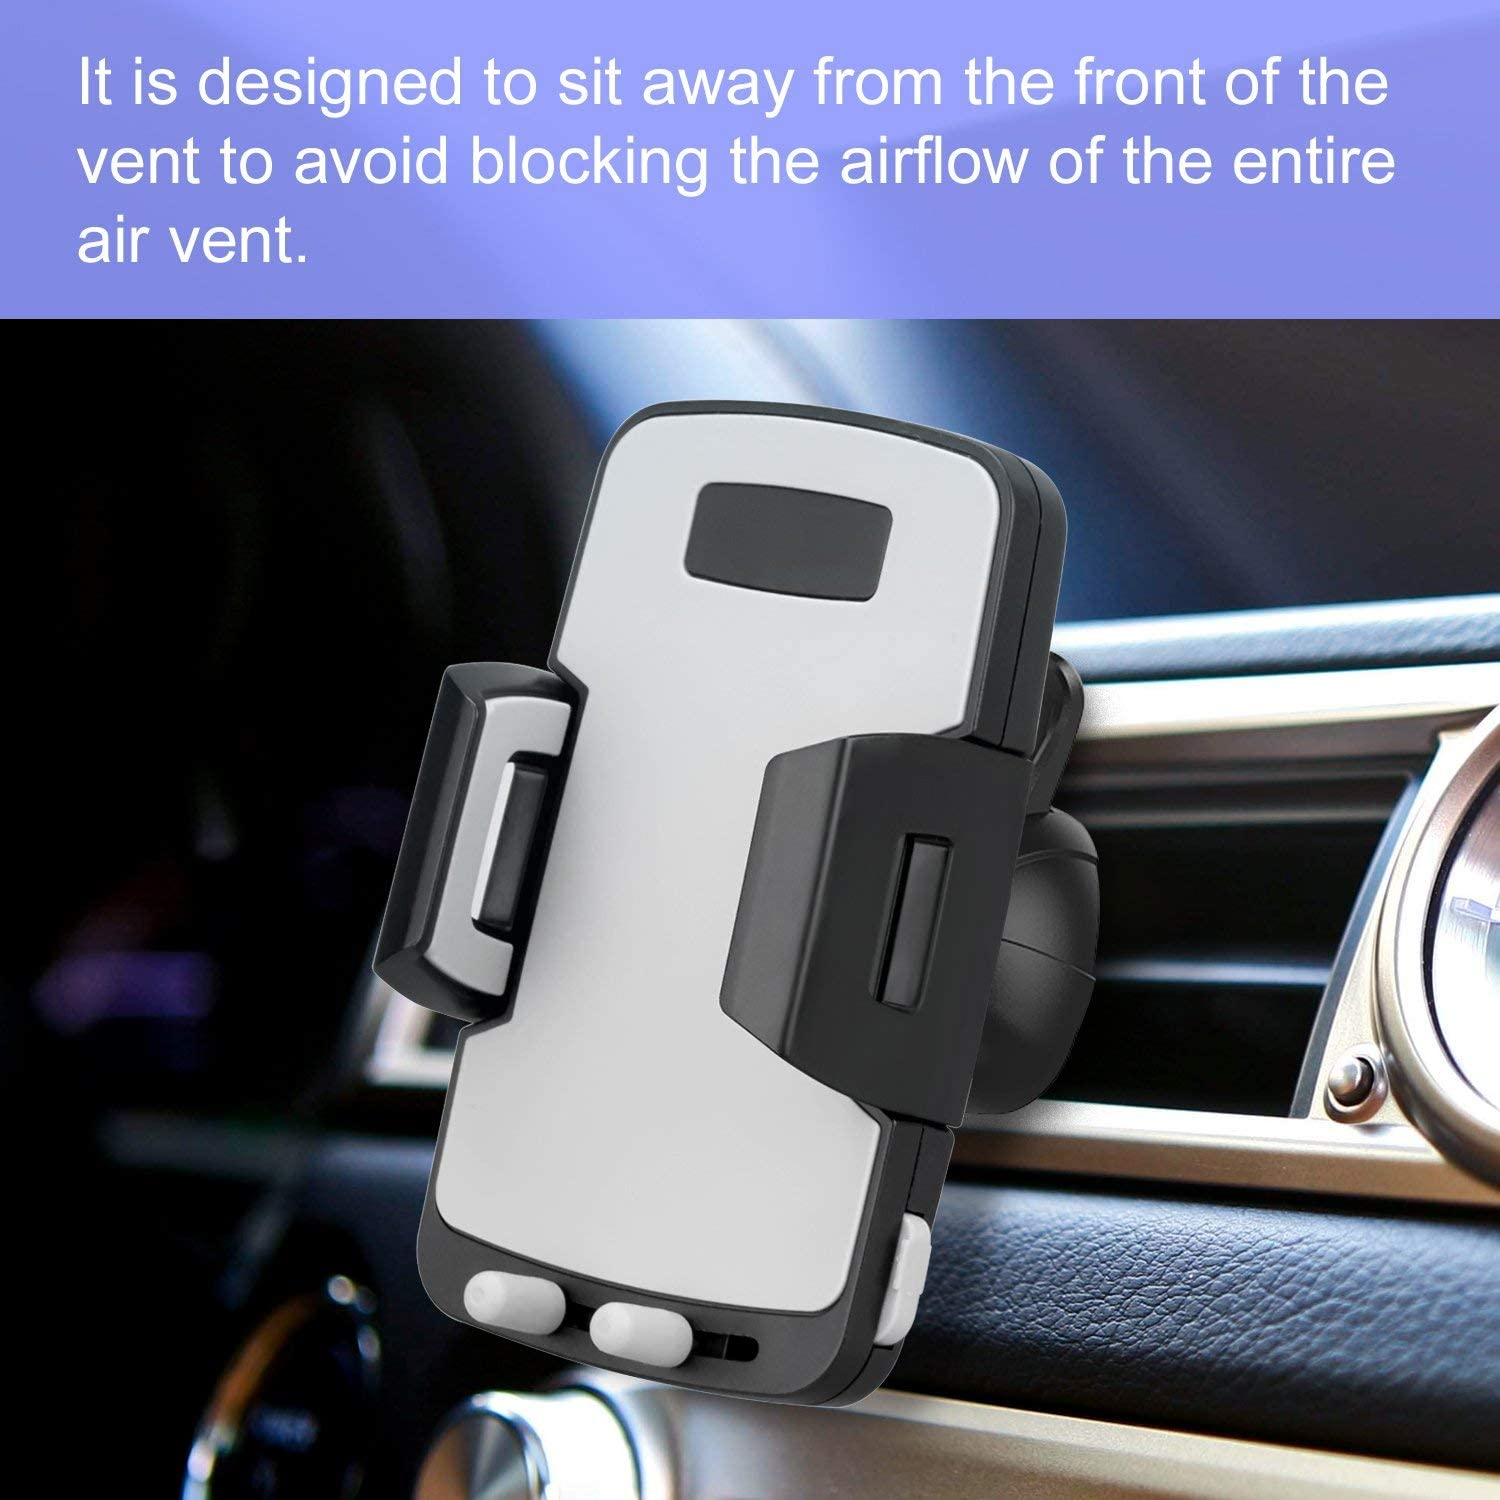 Avolare Support Telephone voiture Support Telephone Voiture Ventilation R/églable Pour iPhone X//8 Plus//8//7//7Plus//6//6Plus GPS etc. Samsung Galaxy S8//S8 Plus//Note 8//S7 Edge//A7//A5//